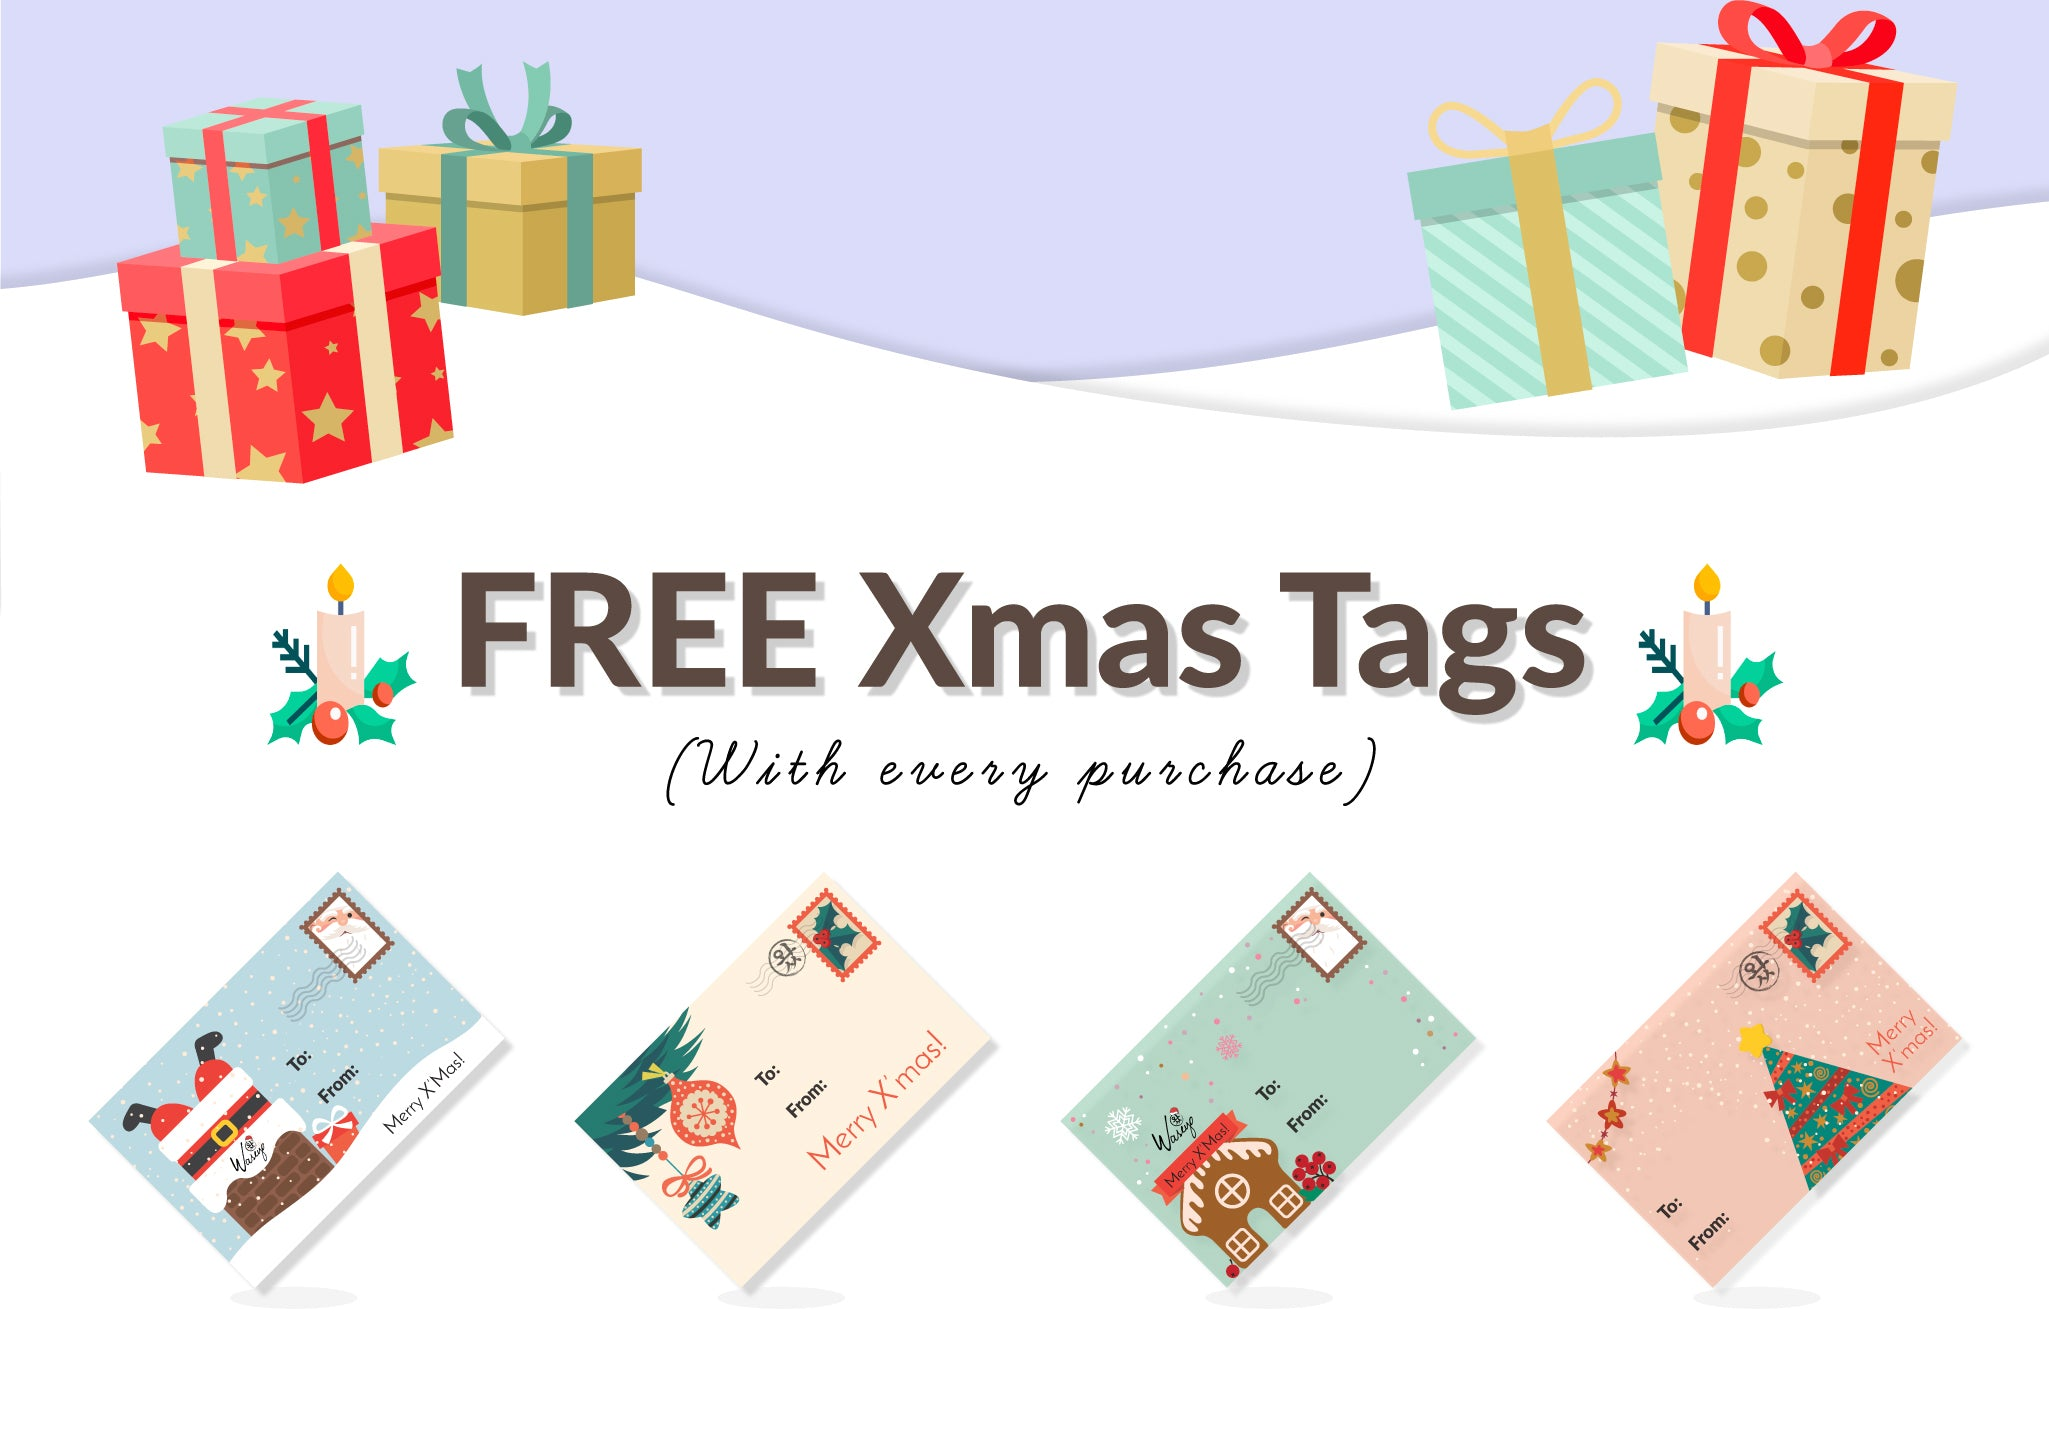 Free Xmas Gift Tags with every purchase!